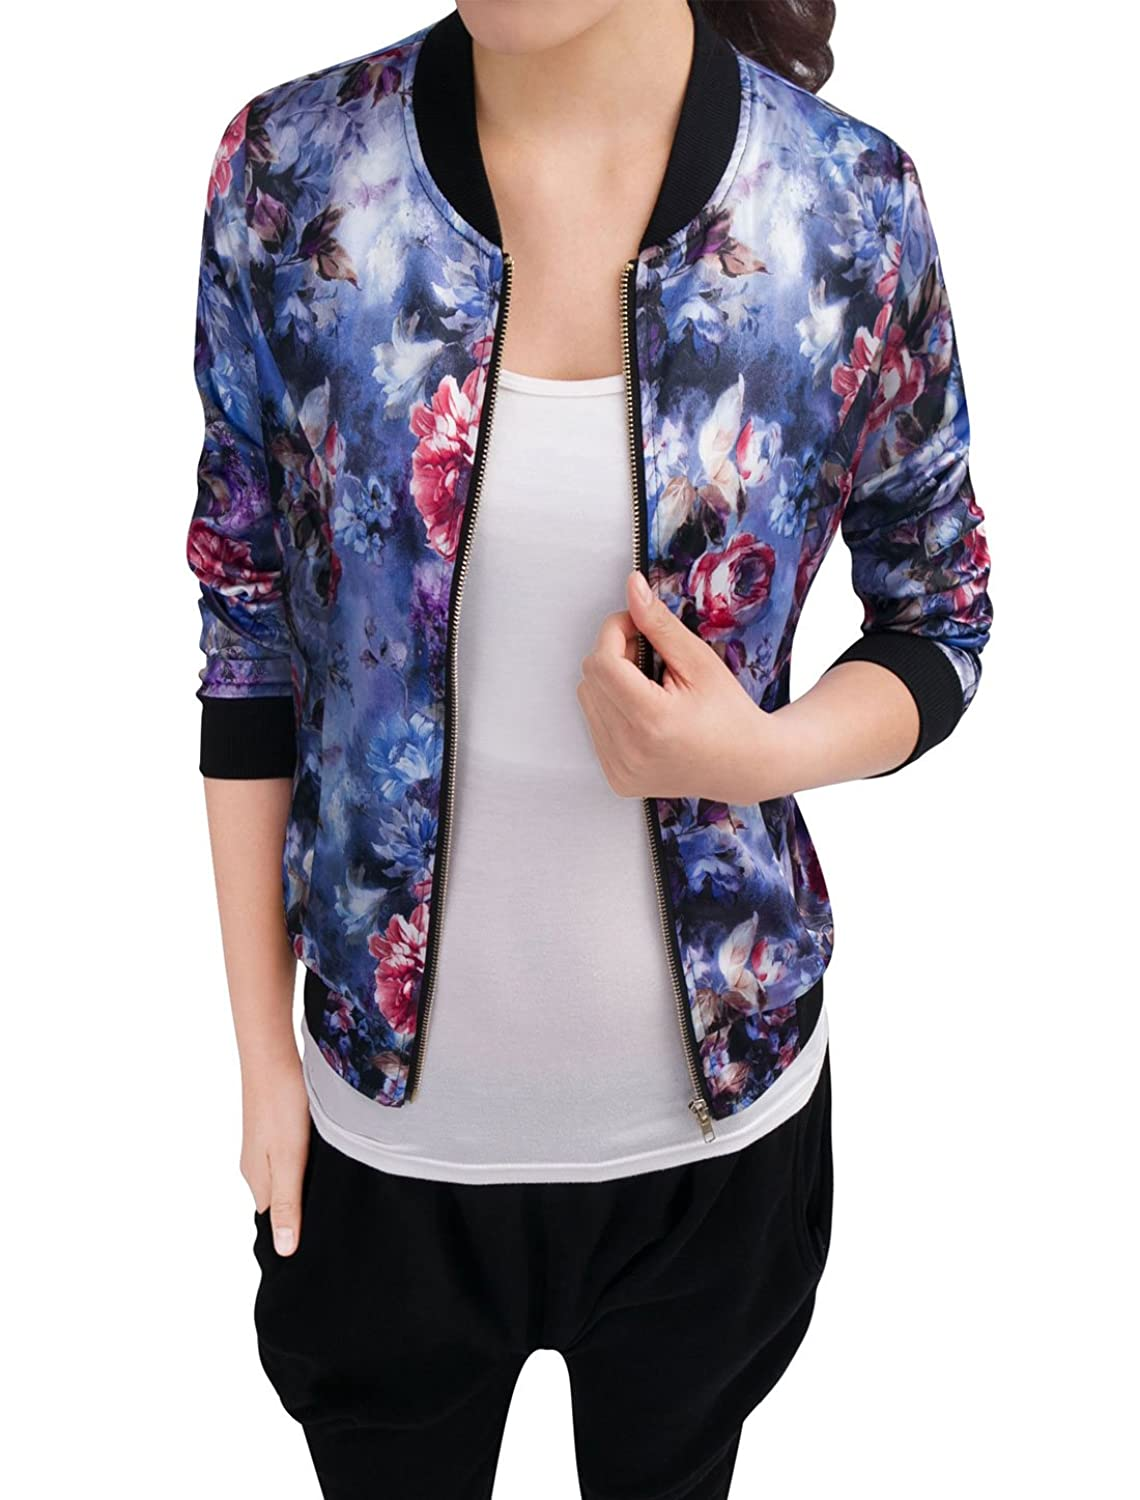 Ladies Floral Bomber Jacket | Jackets Review